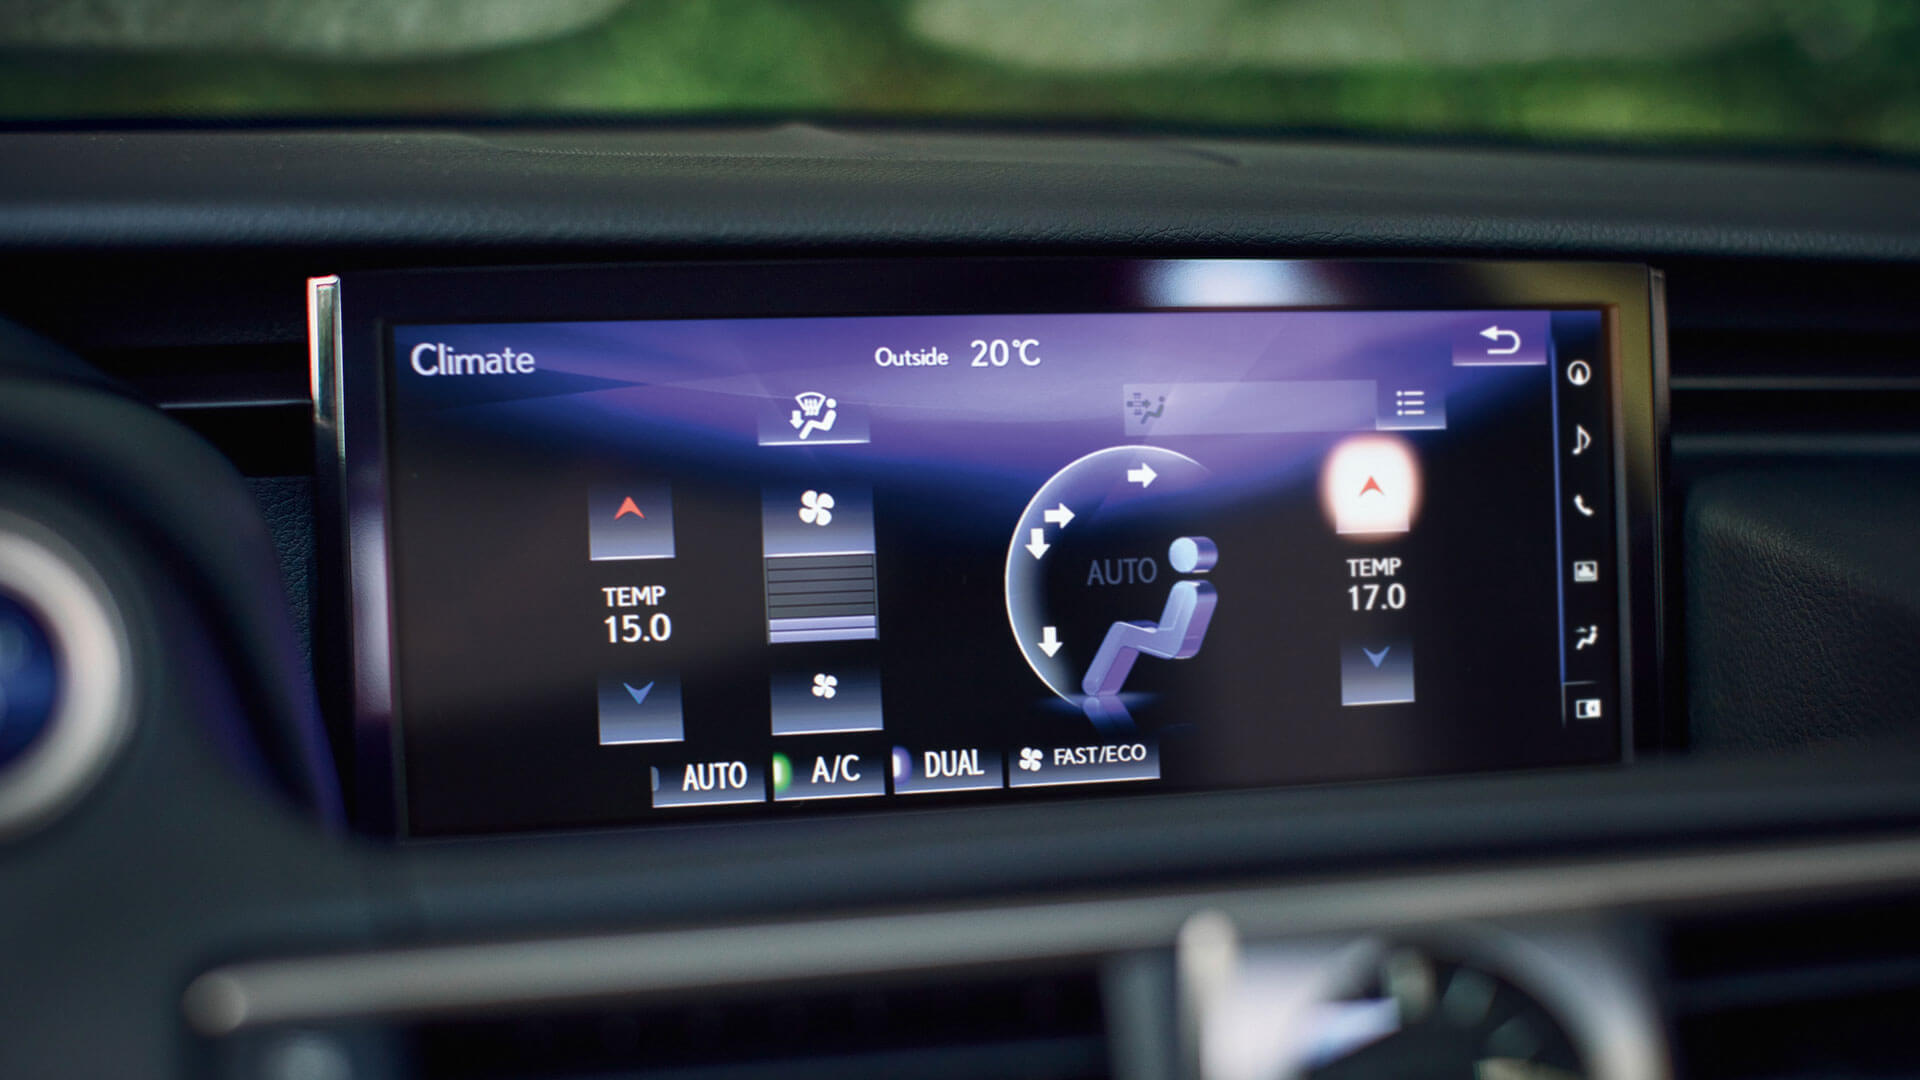 2017 lexus is 300h features resolution display